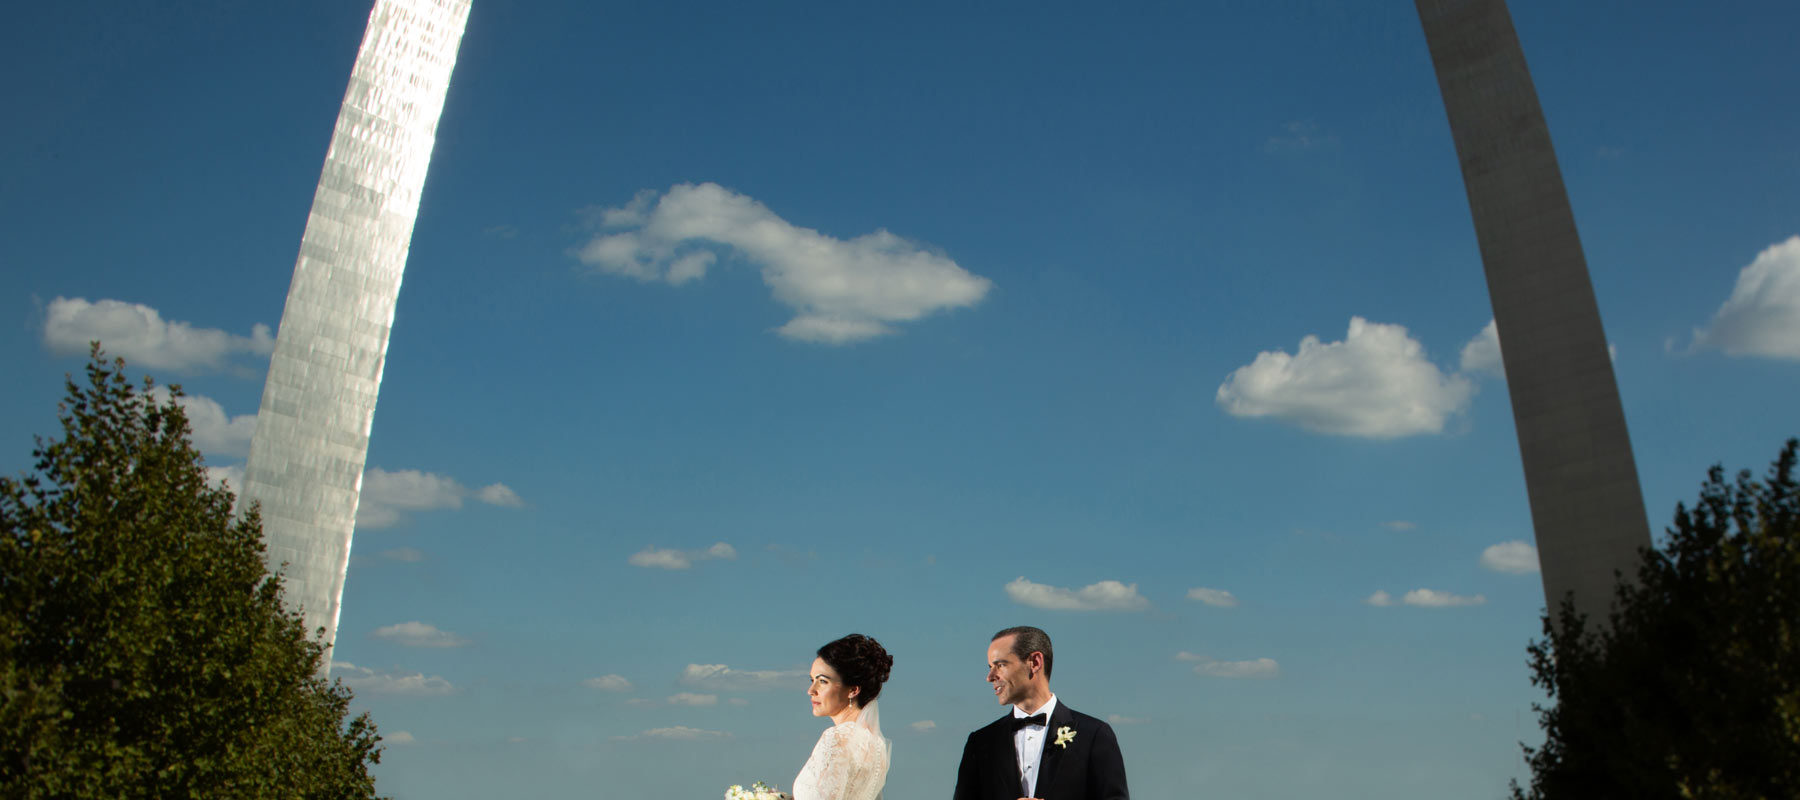 Katie + Brian // Sophisticated